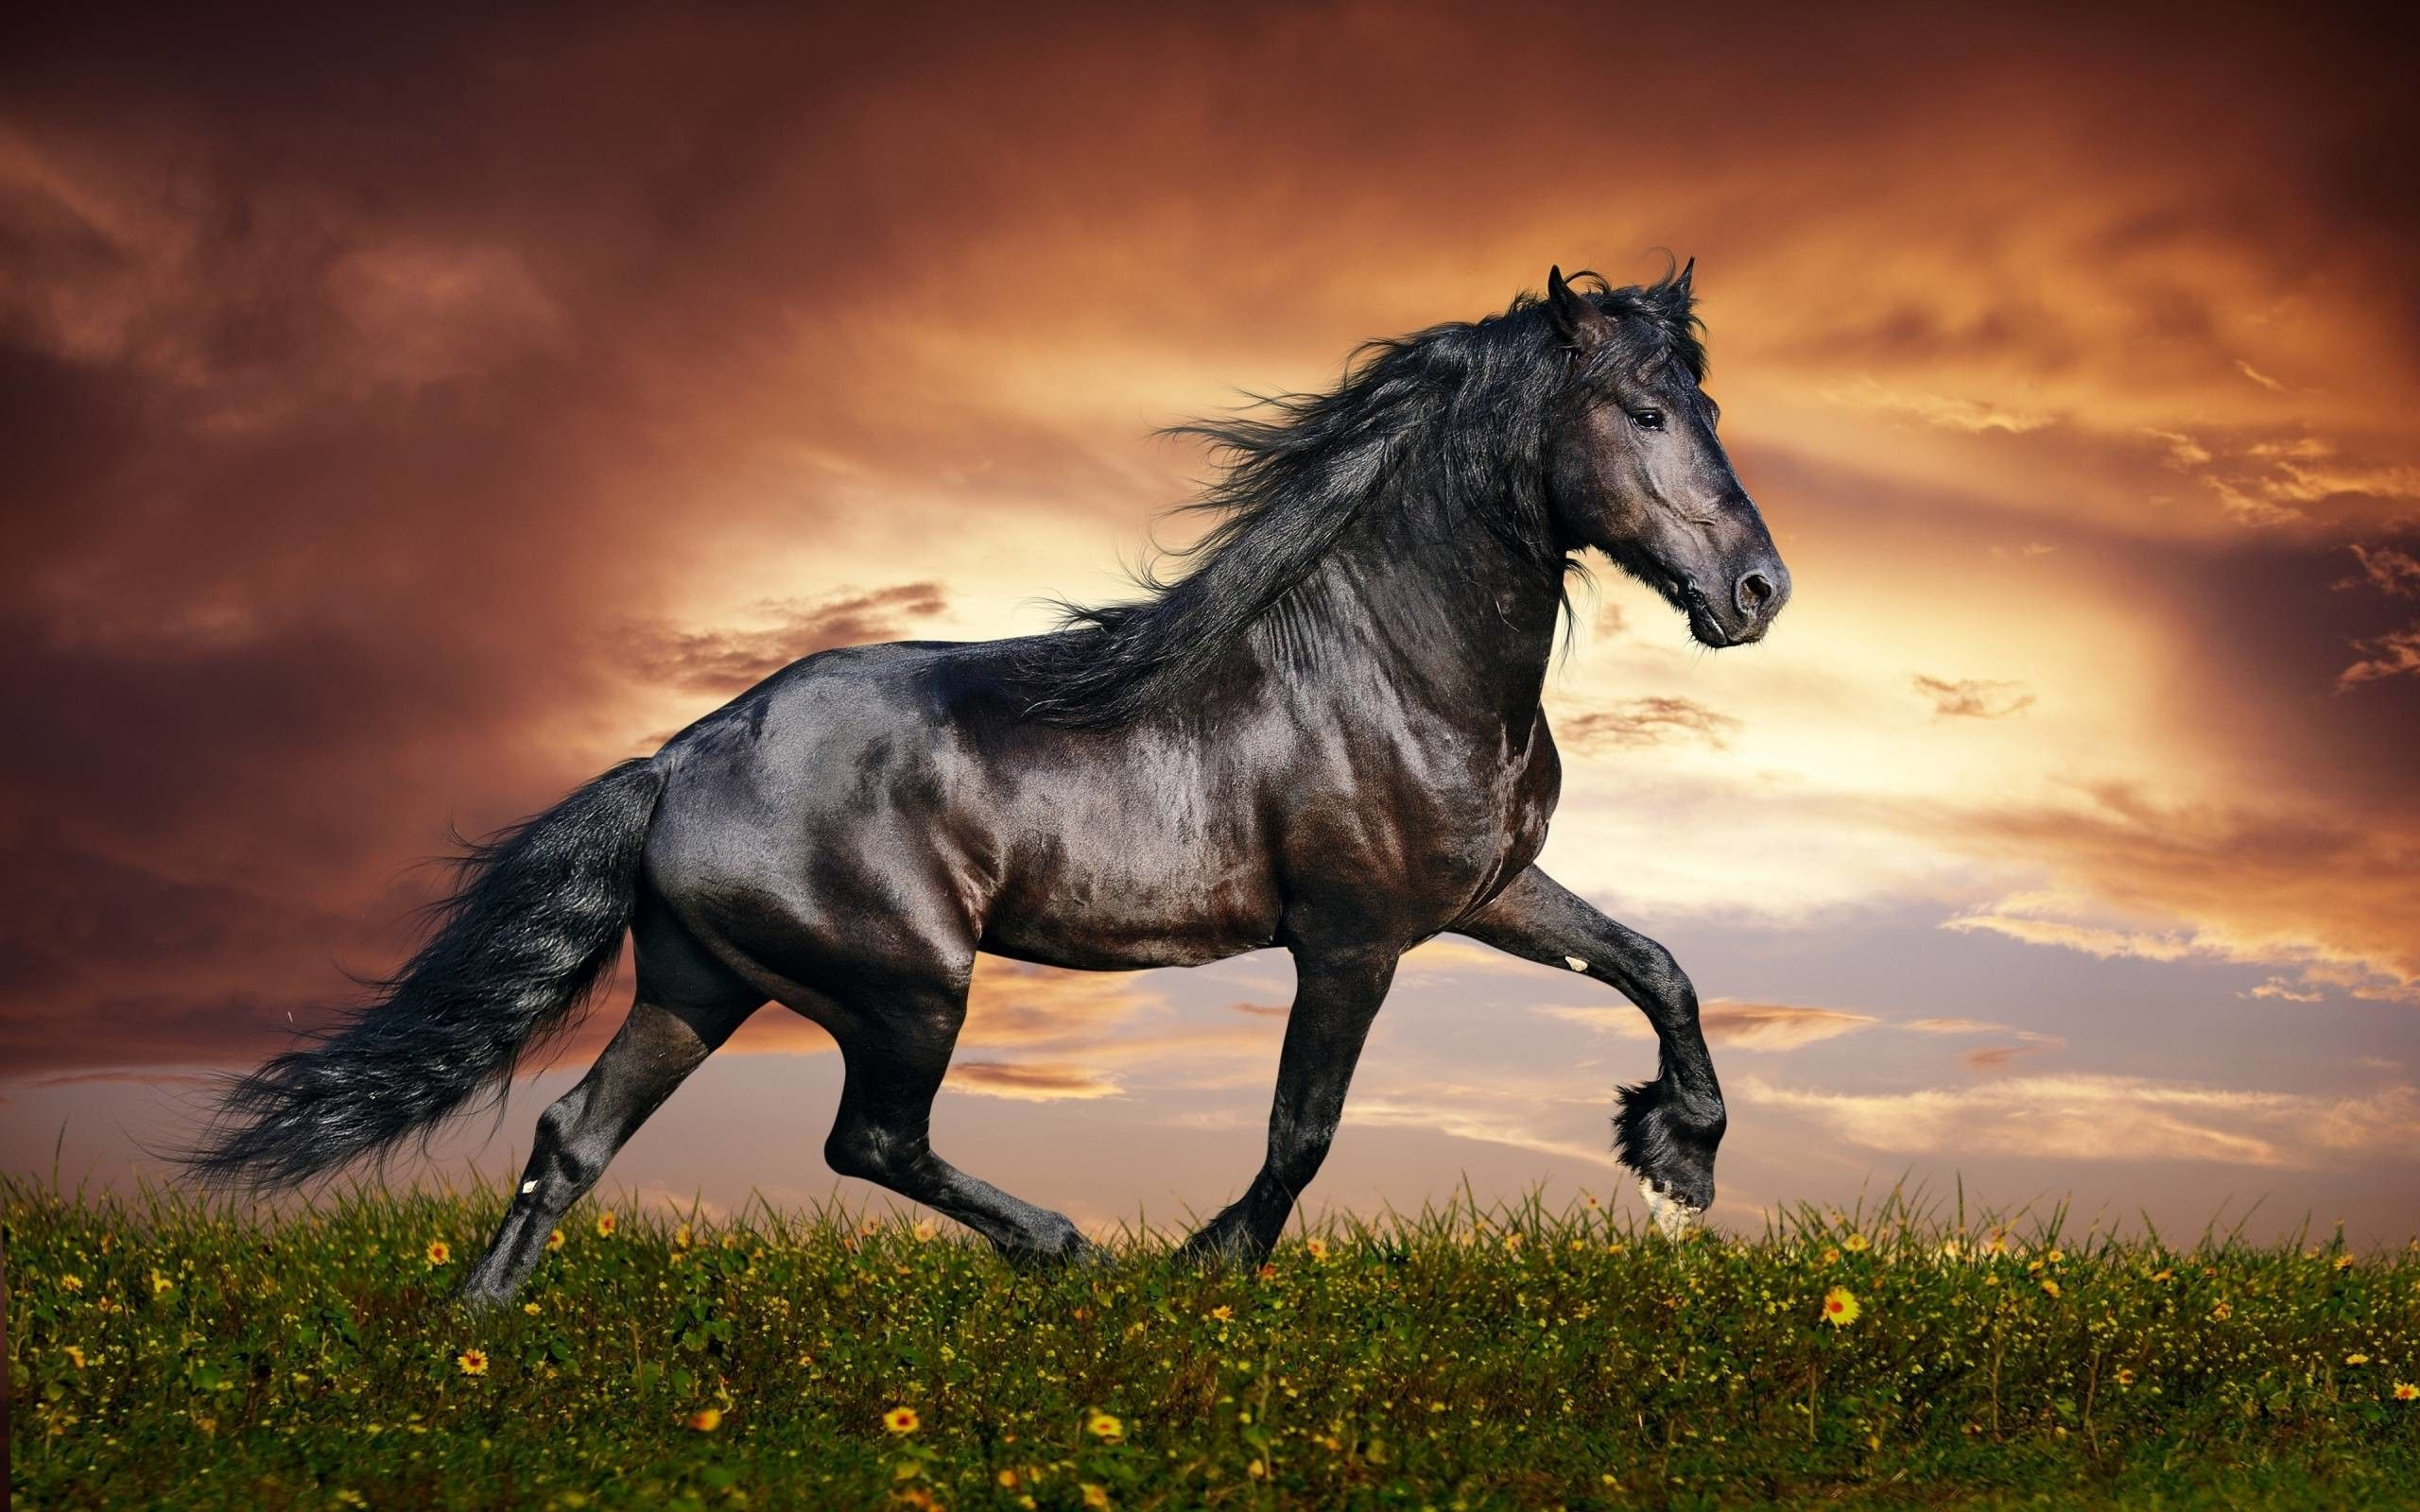 Horse PC Wallpapers - 4k, HD Horse PC ...